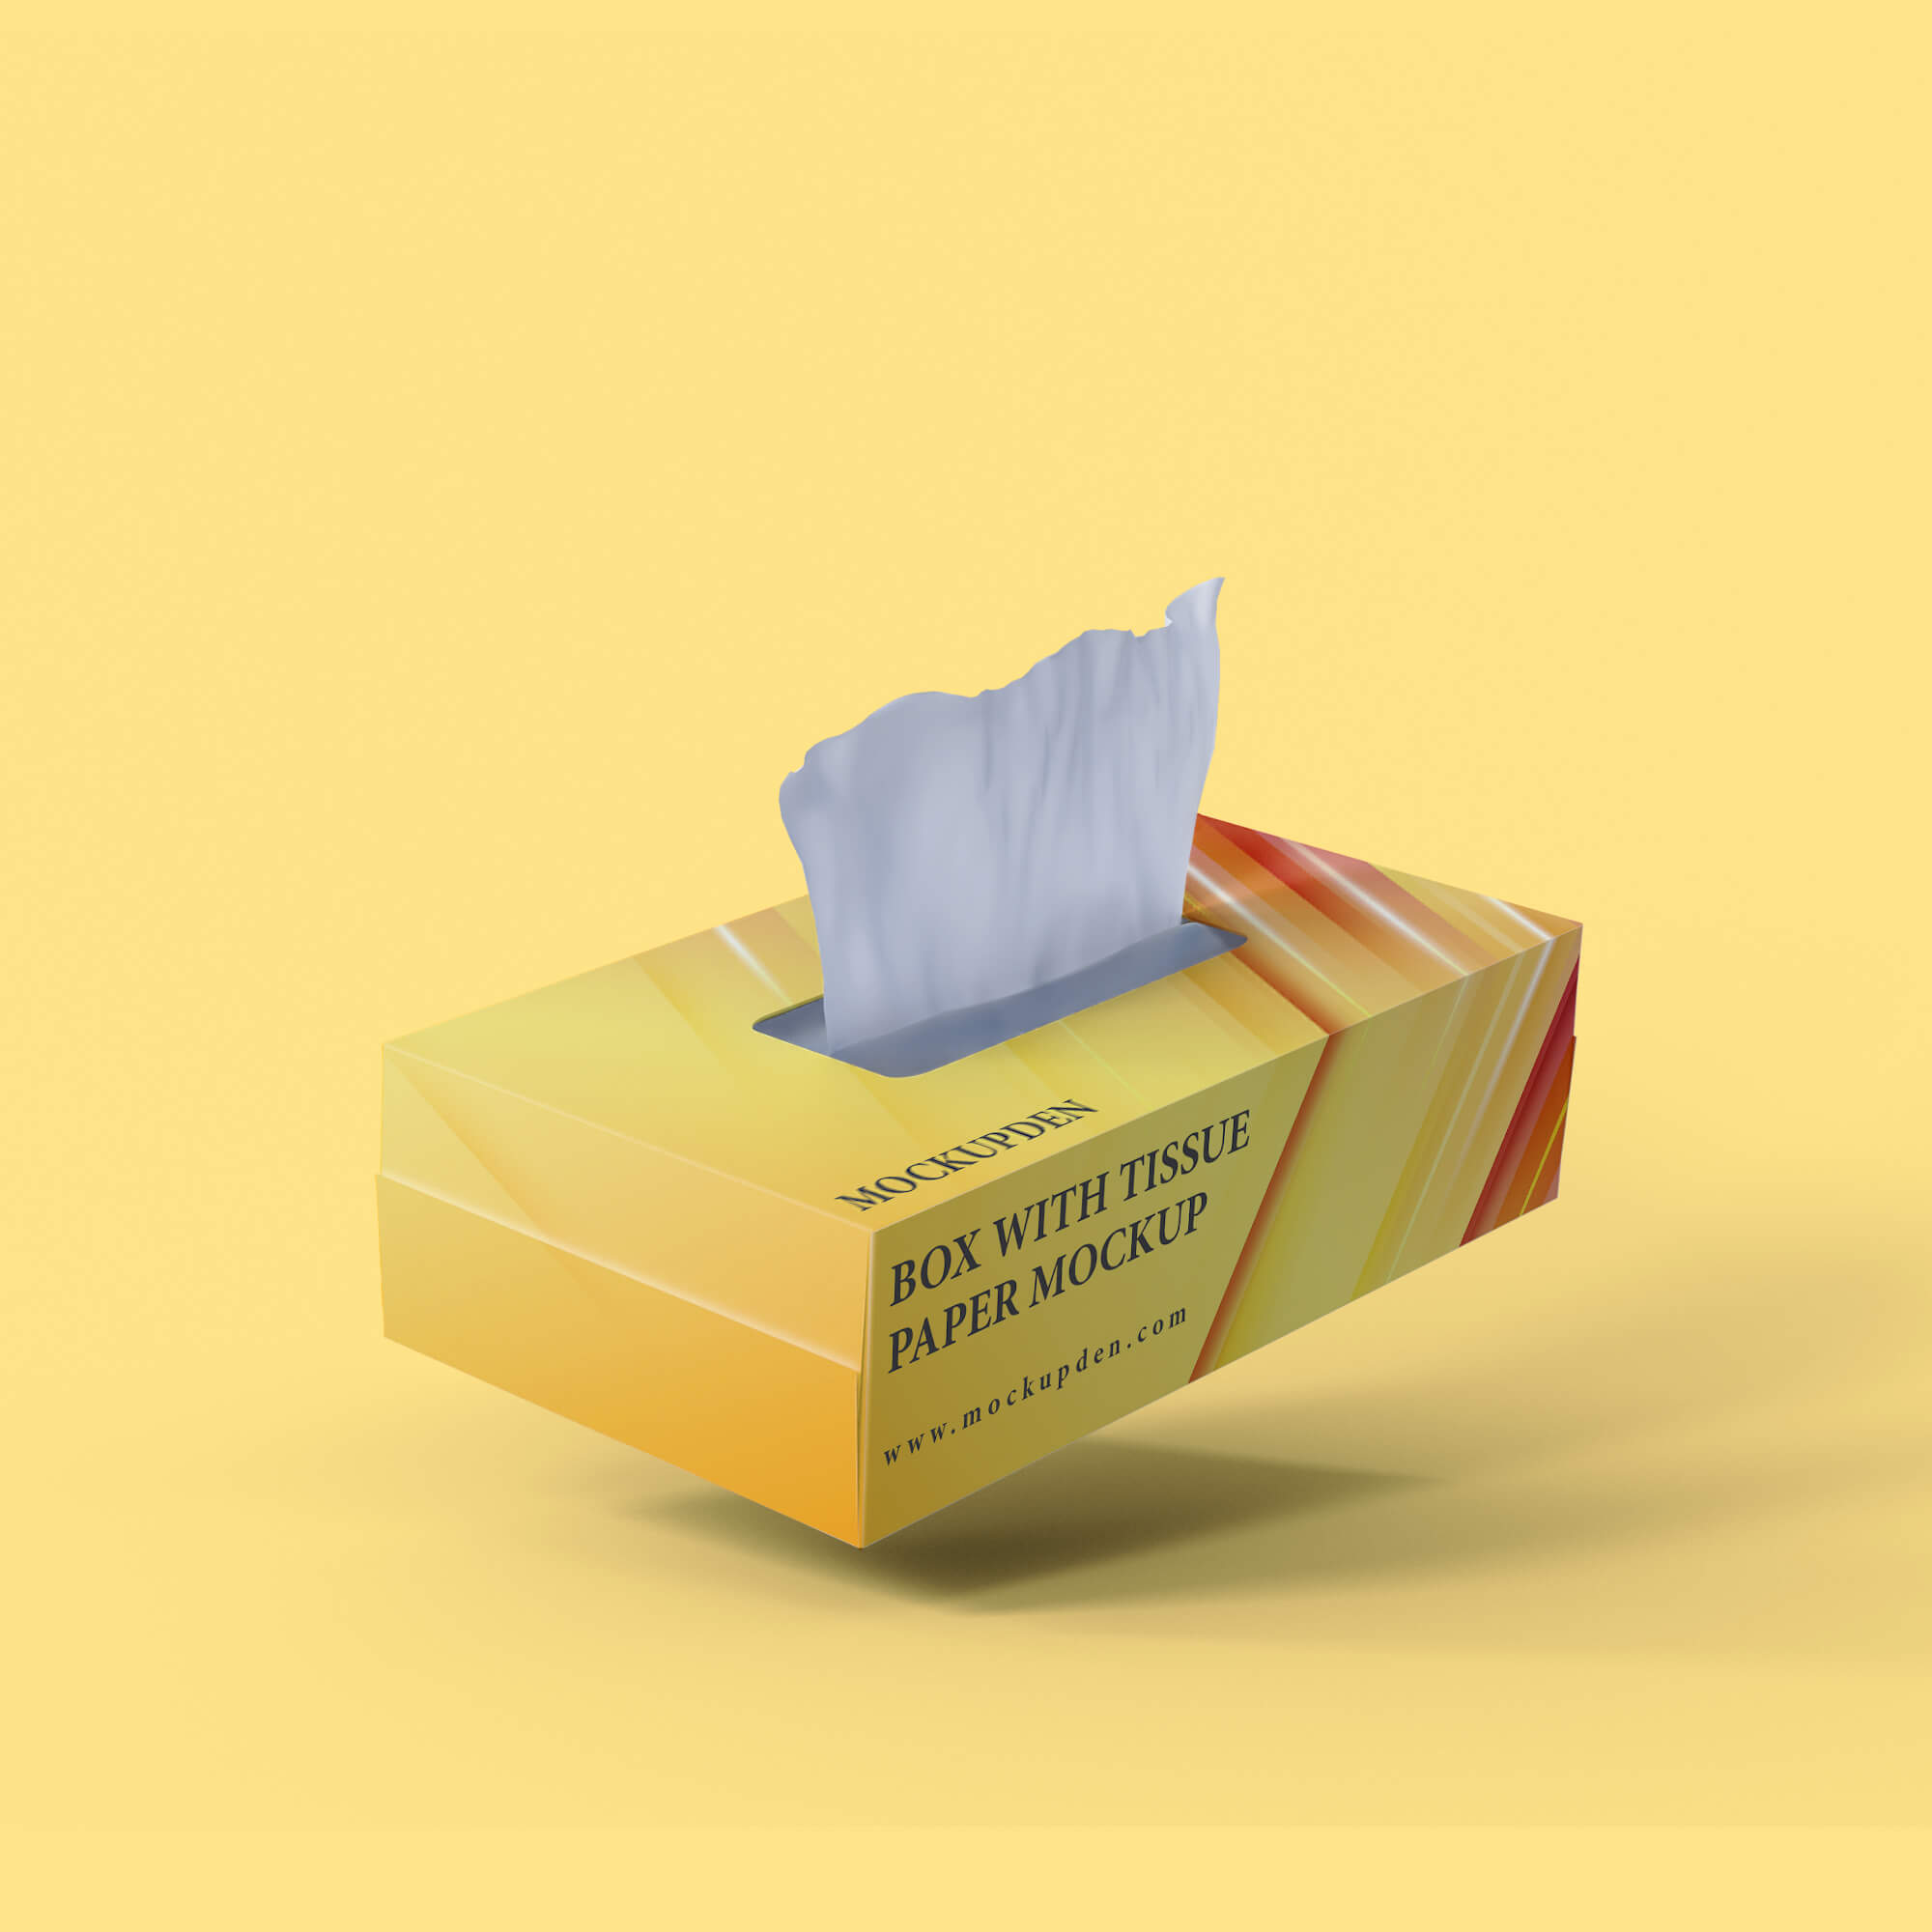 Design Free Box With Tissue Paper Mockup PSD Template